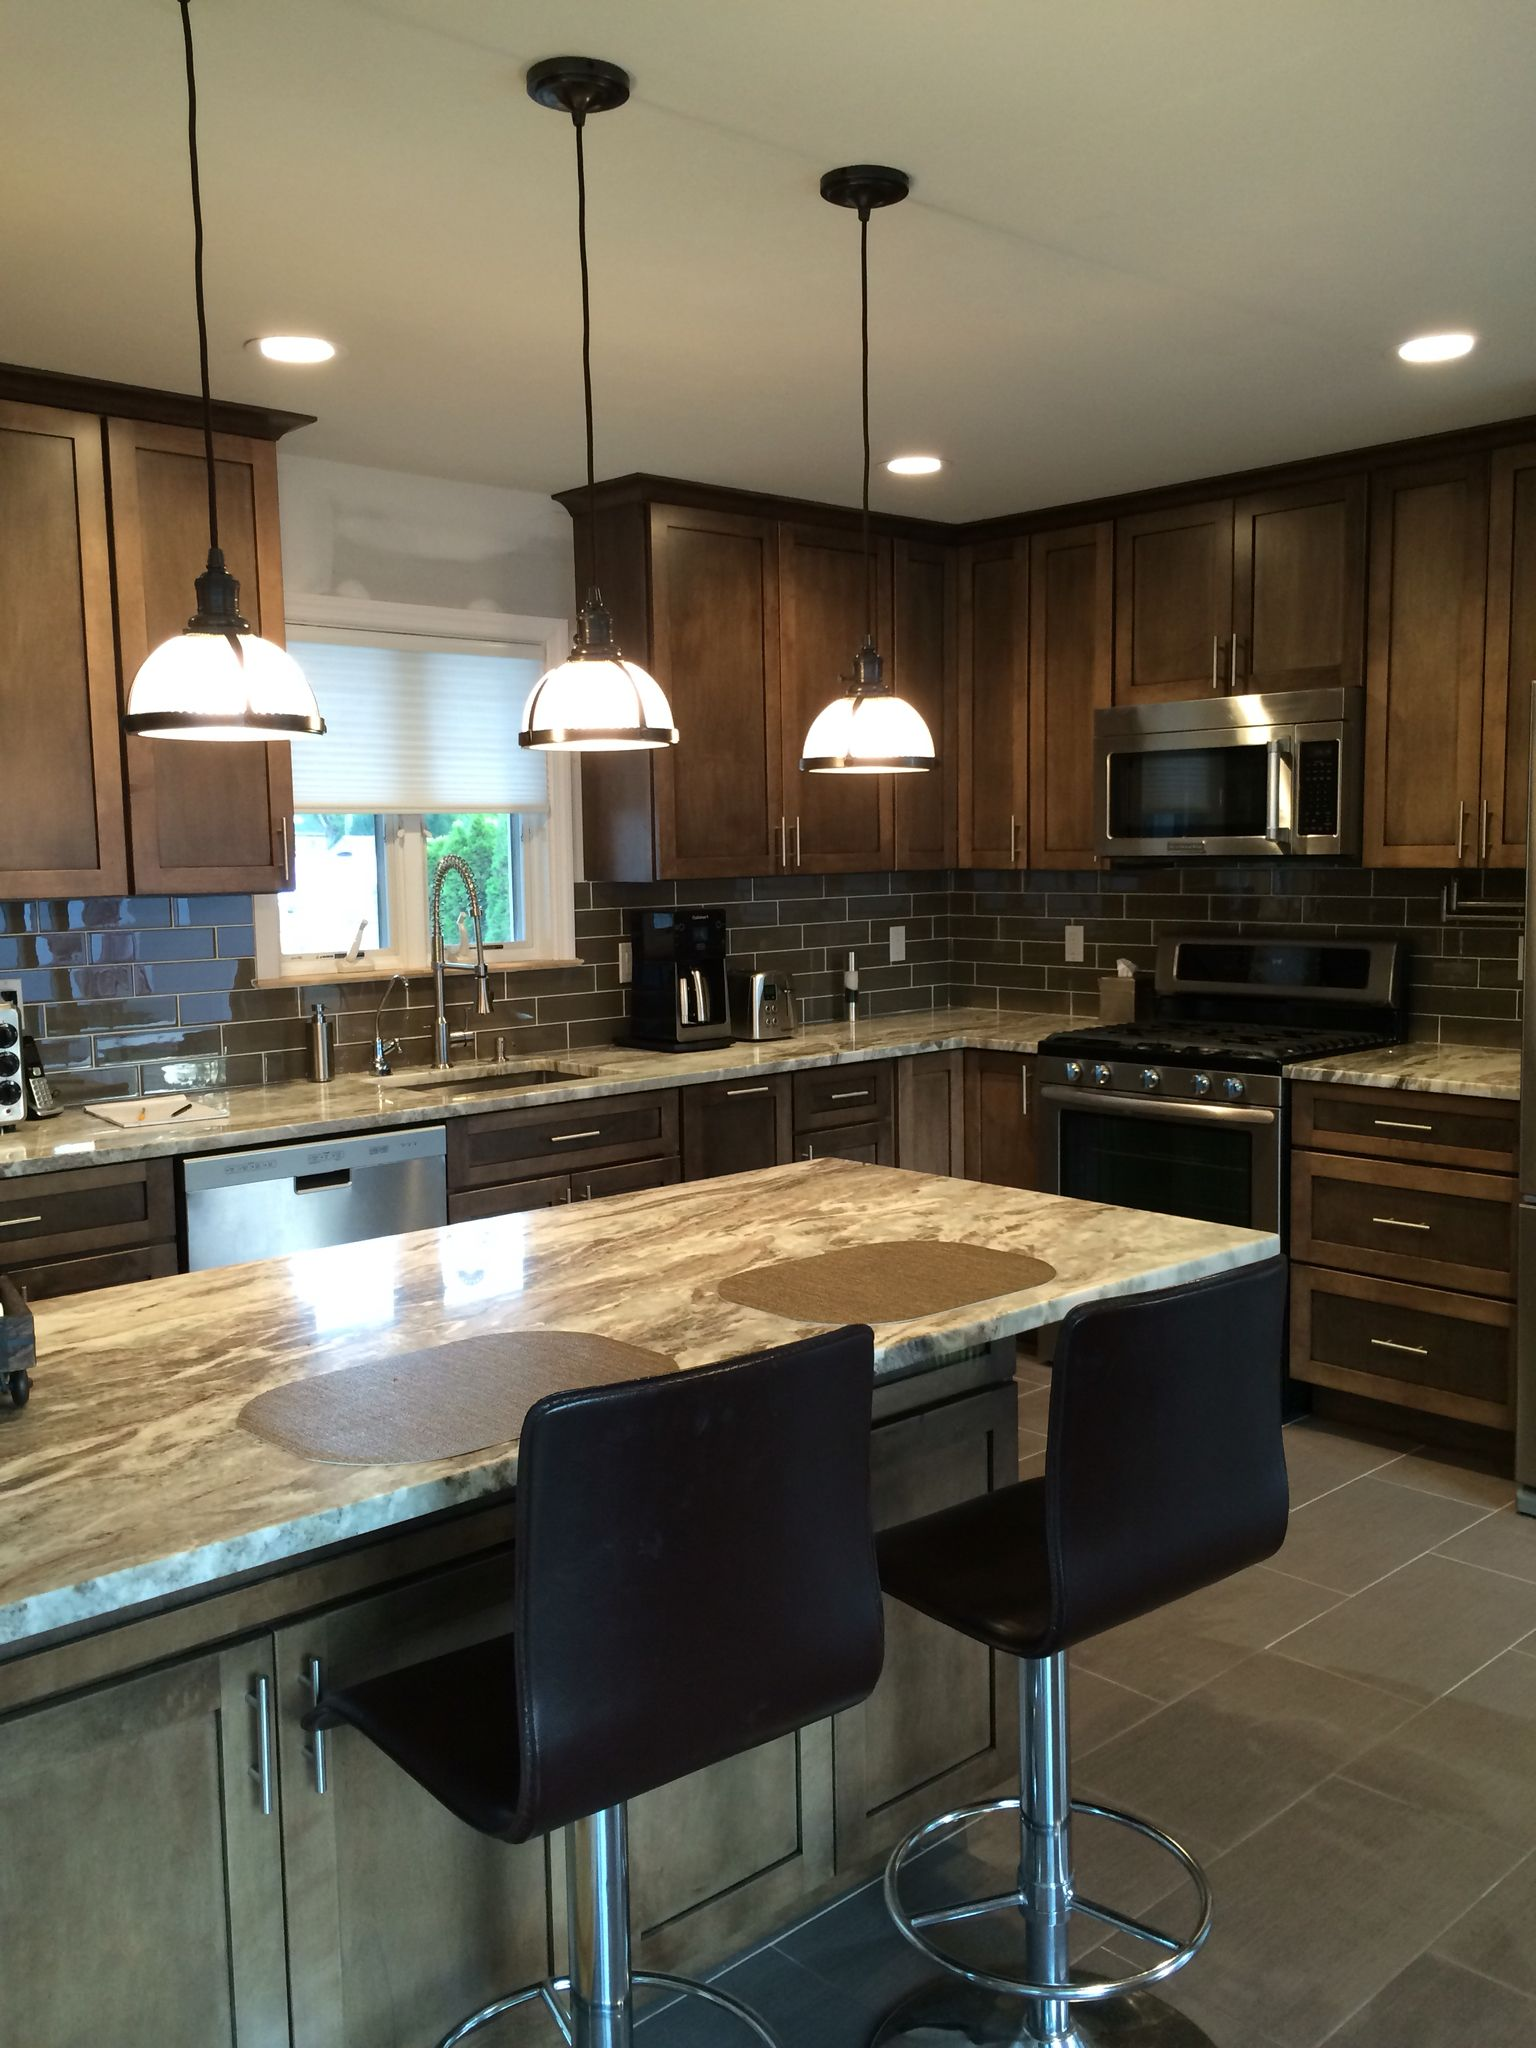 Cabinets Yorktowne Shaw Eagle Rock Sable Stain Countertop Terra Bianca Backsplash Tile Shop Halsted Cabinets To Go Home Decor Home